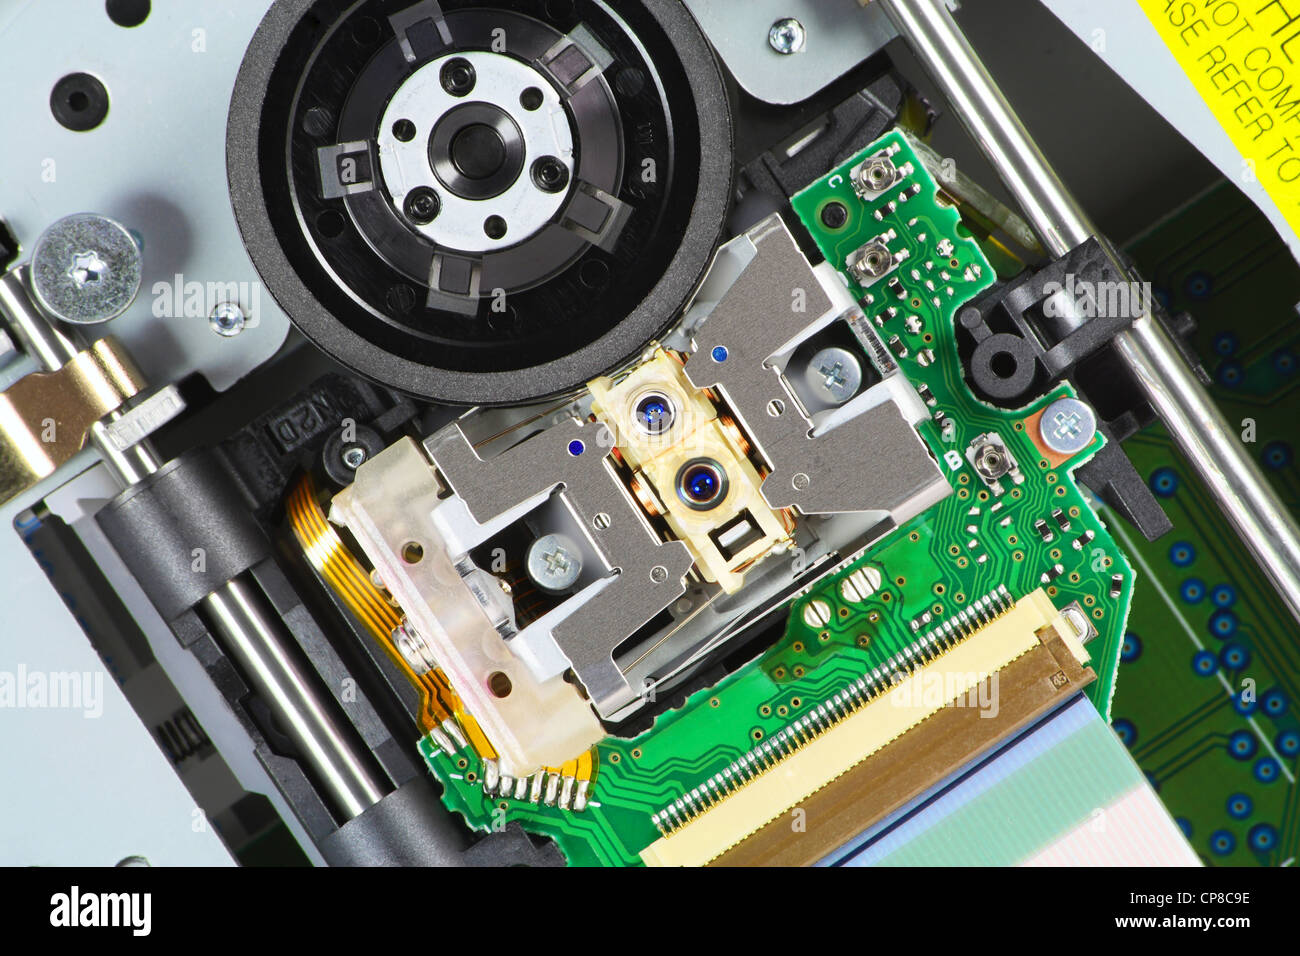 The modern blu-ray laser unit for reading Blue-Ray and DVD of disks. Mass production. Selective focus. - Stock Image